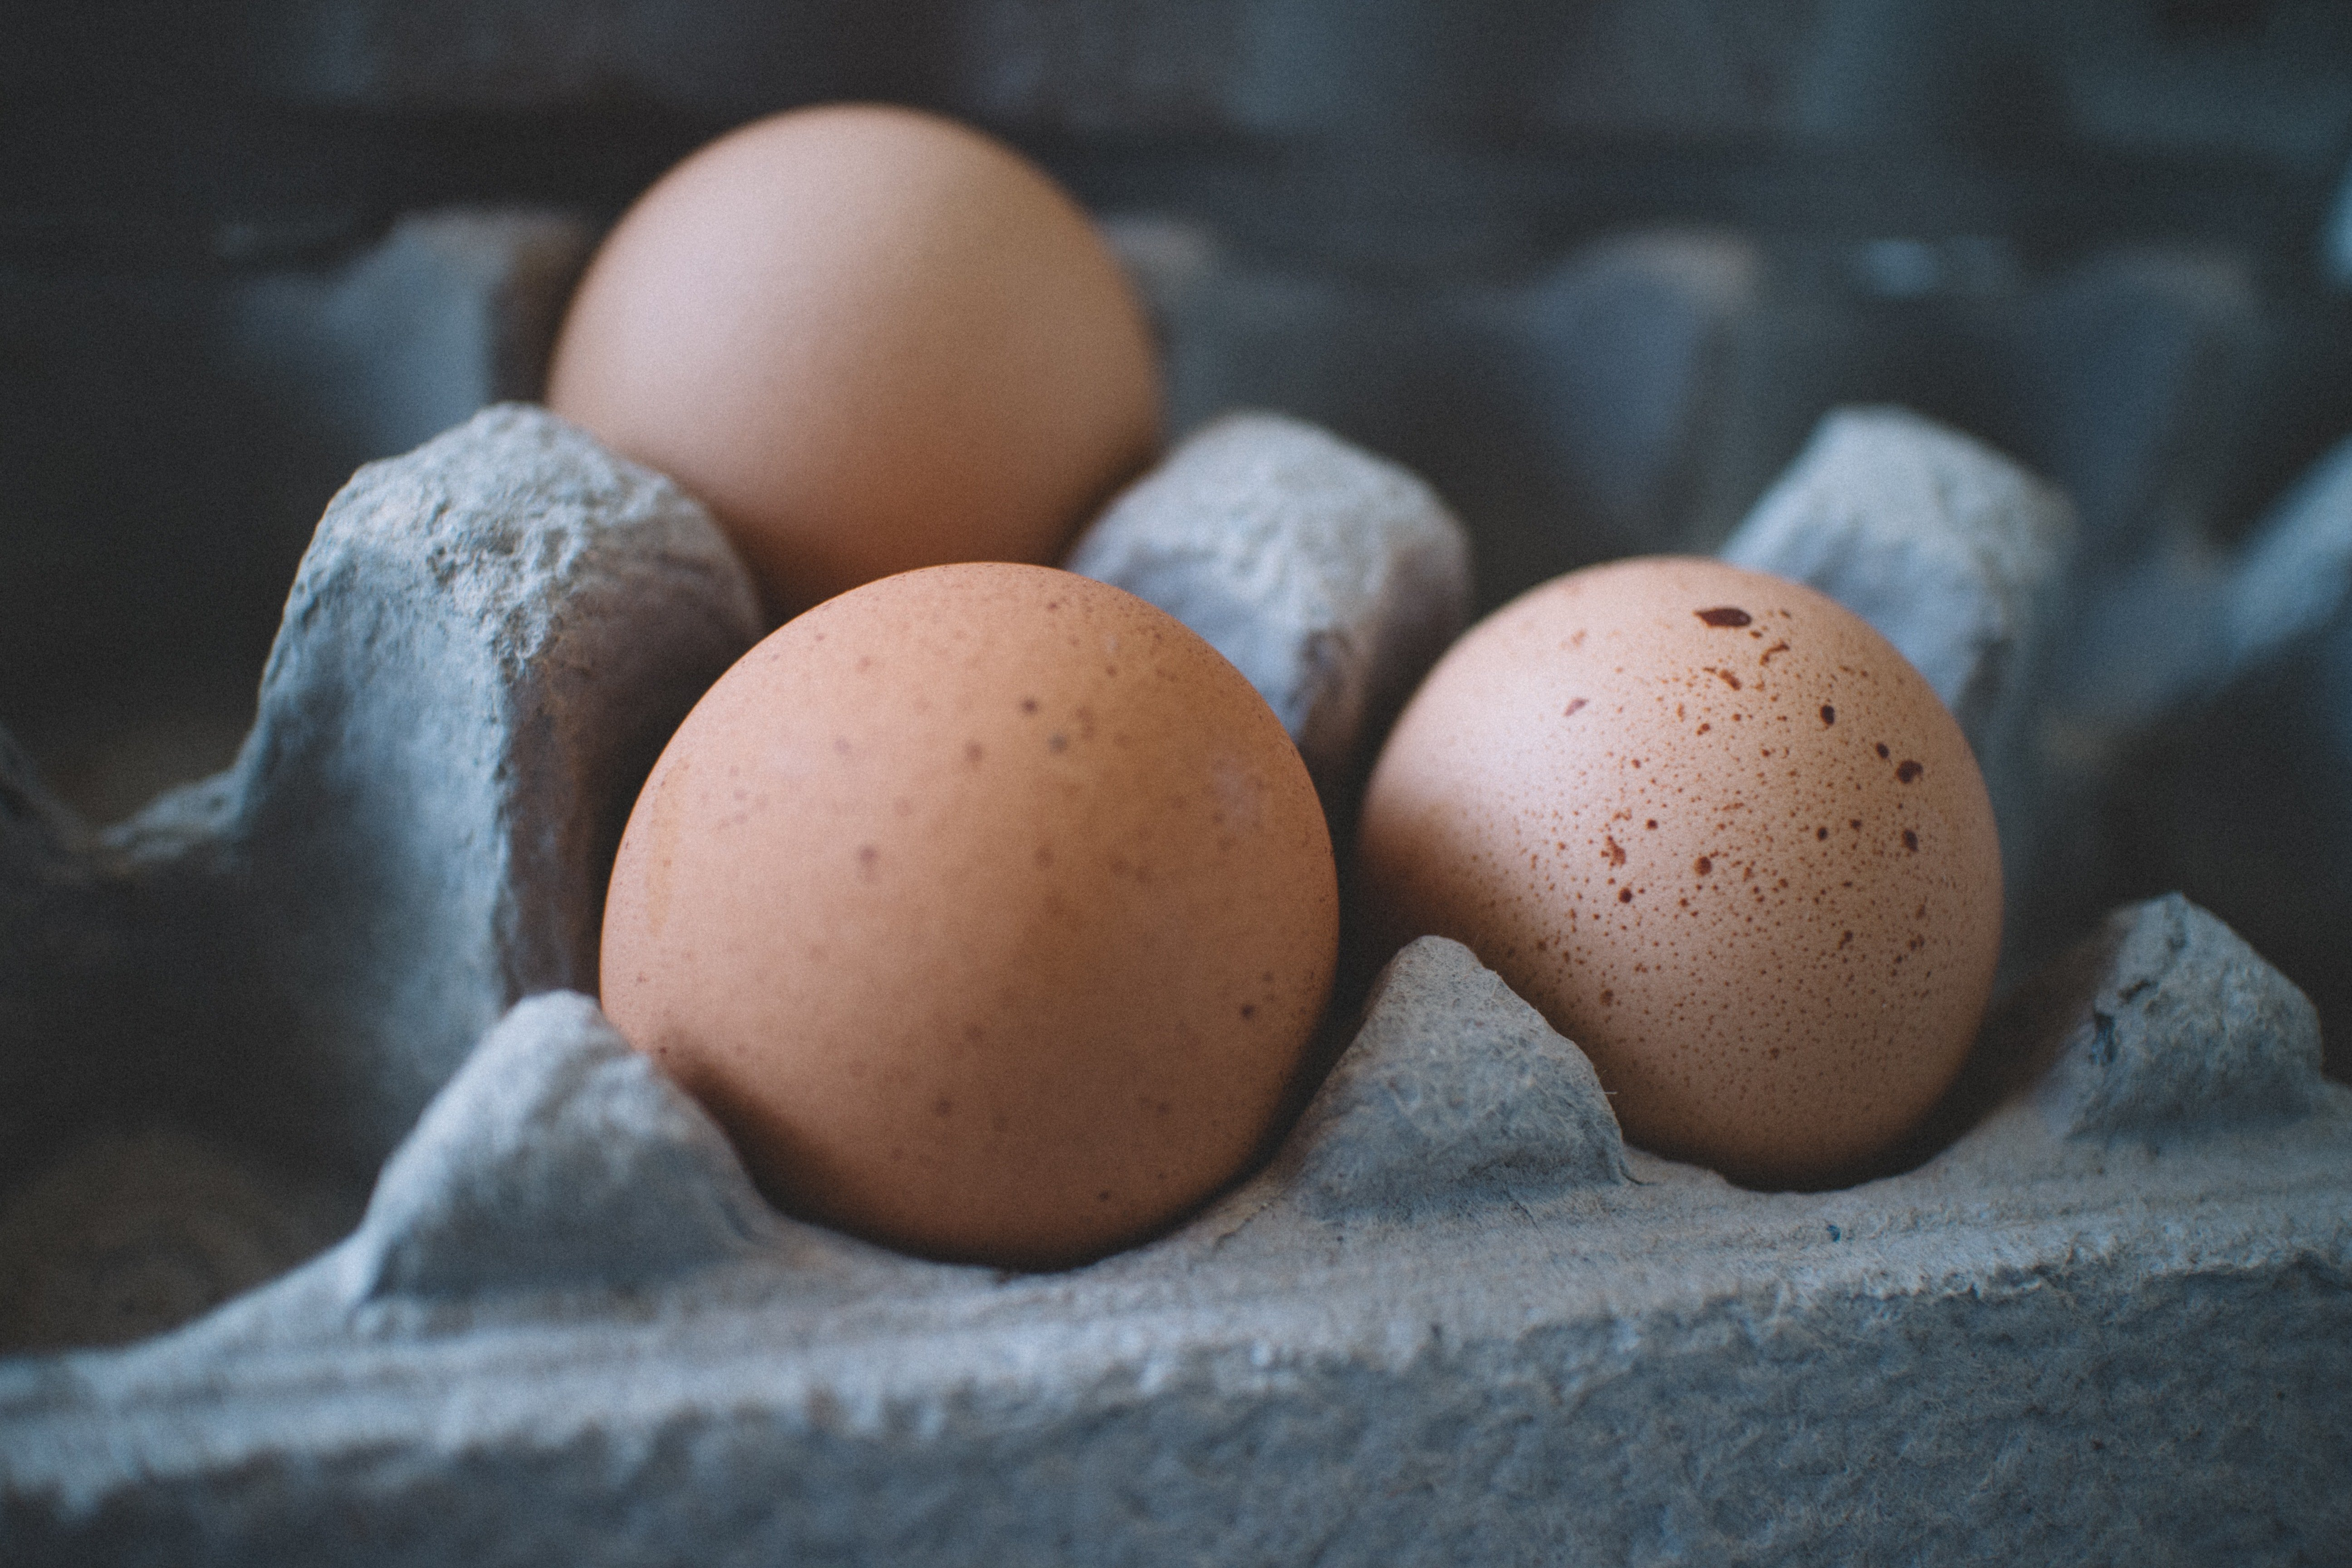 selective-focus-photo-of-three-eggs-on-tray-600615